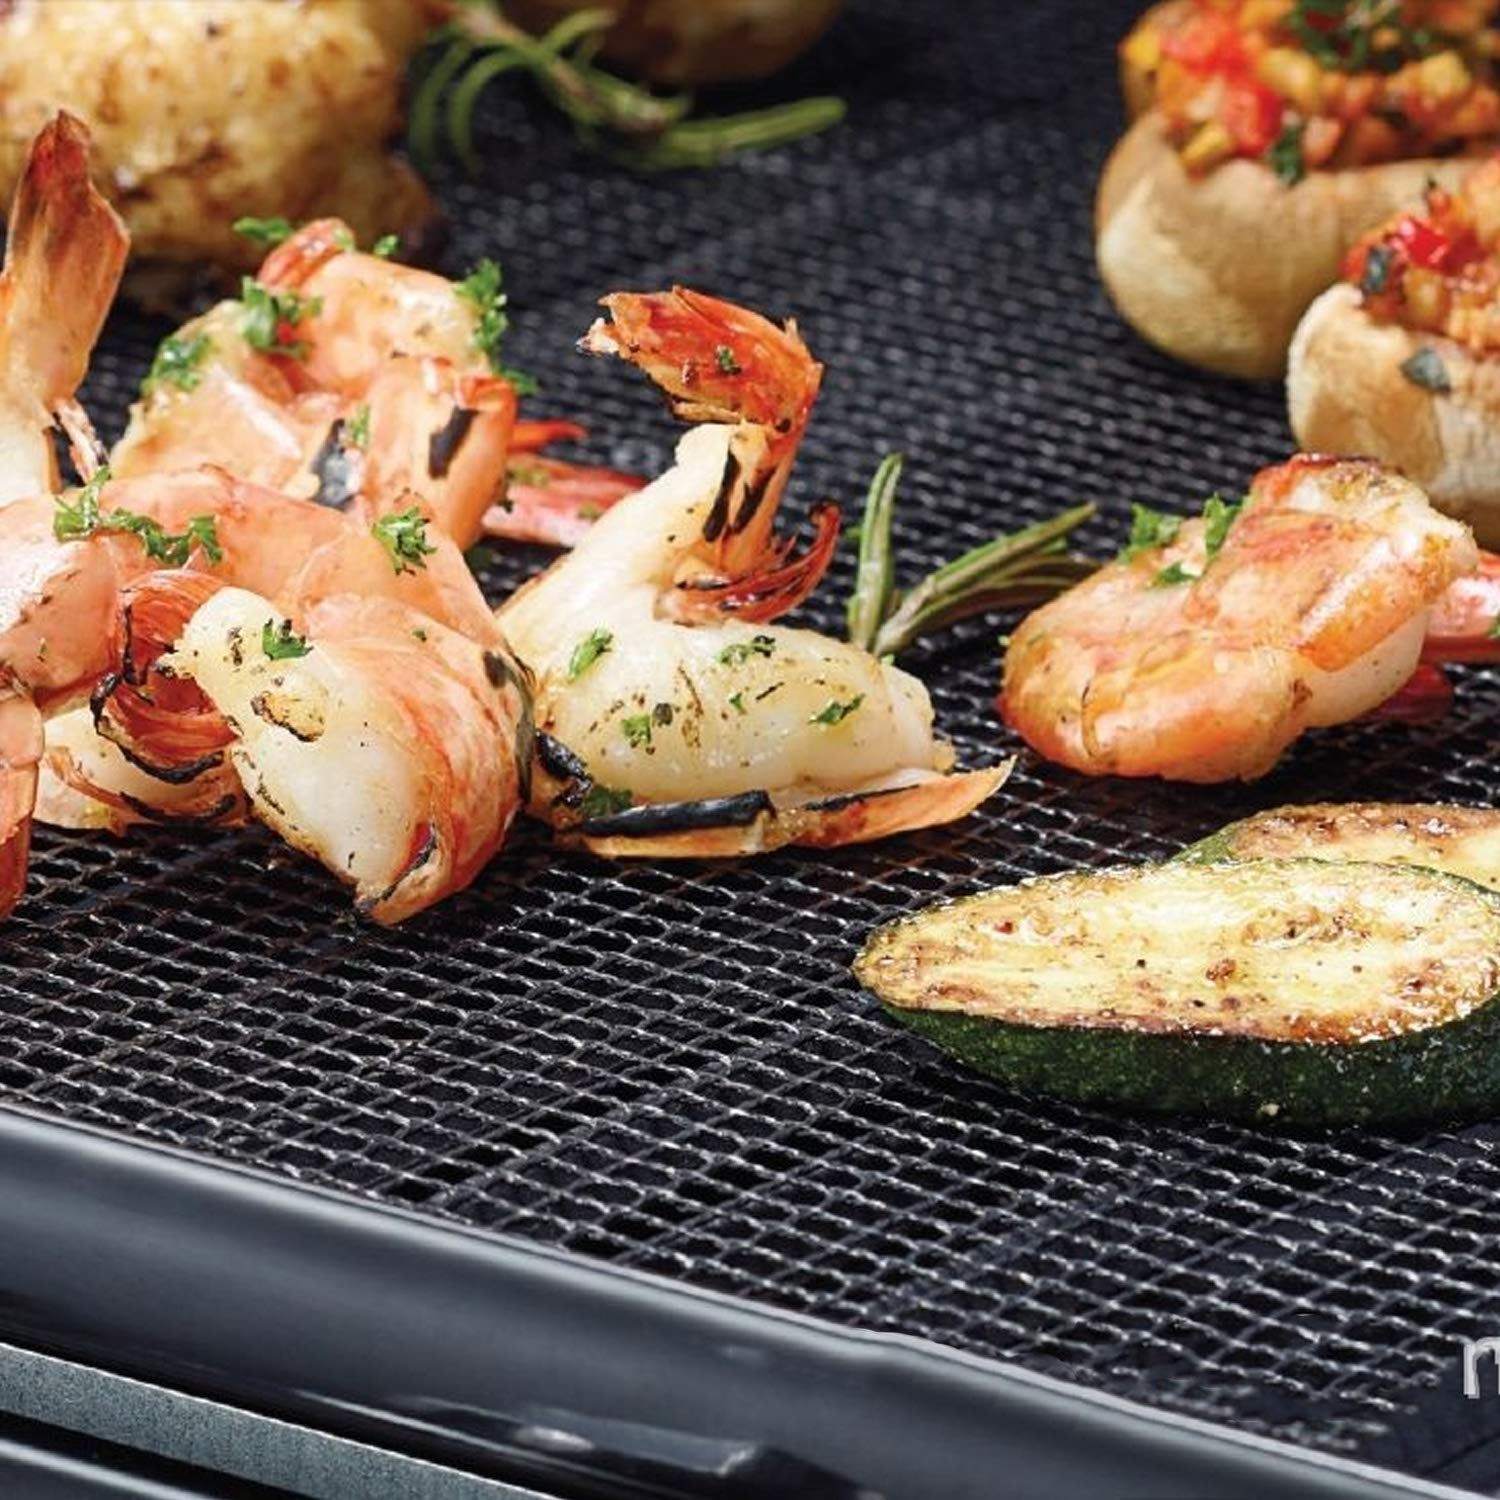 BBQ Grill Mat Set of 3 for Grilling and Baking Veggies- Free Silicone Brush Non Stick BBQ and Baking Mat Reusable PFOA for Grilling Meat